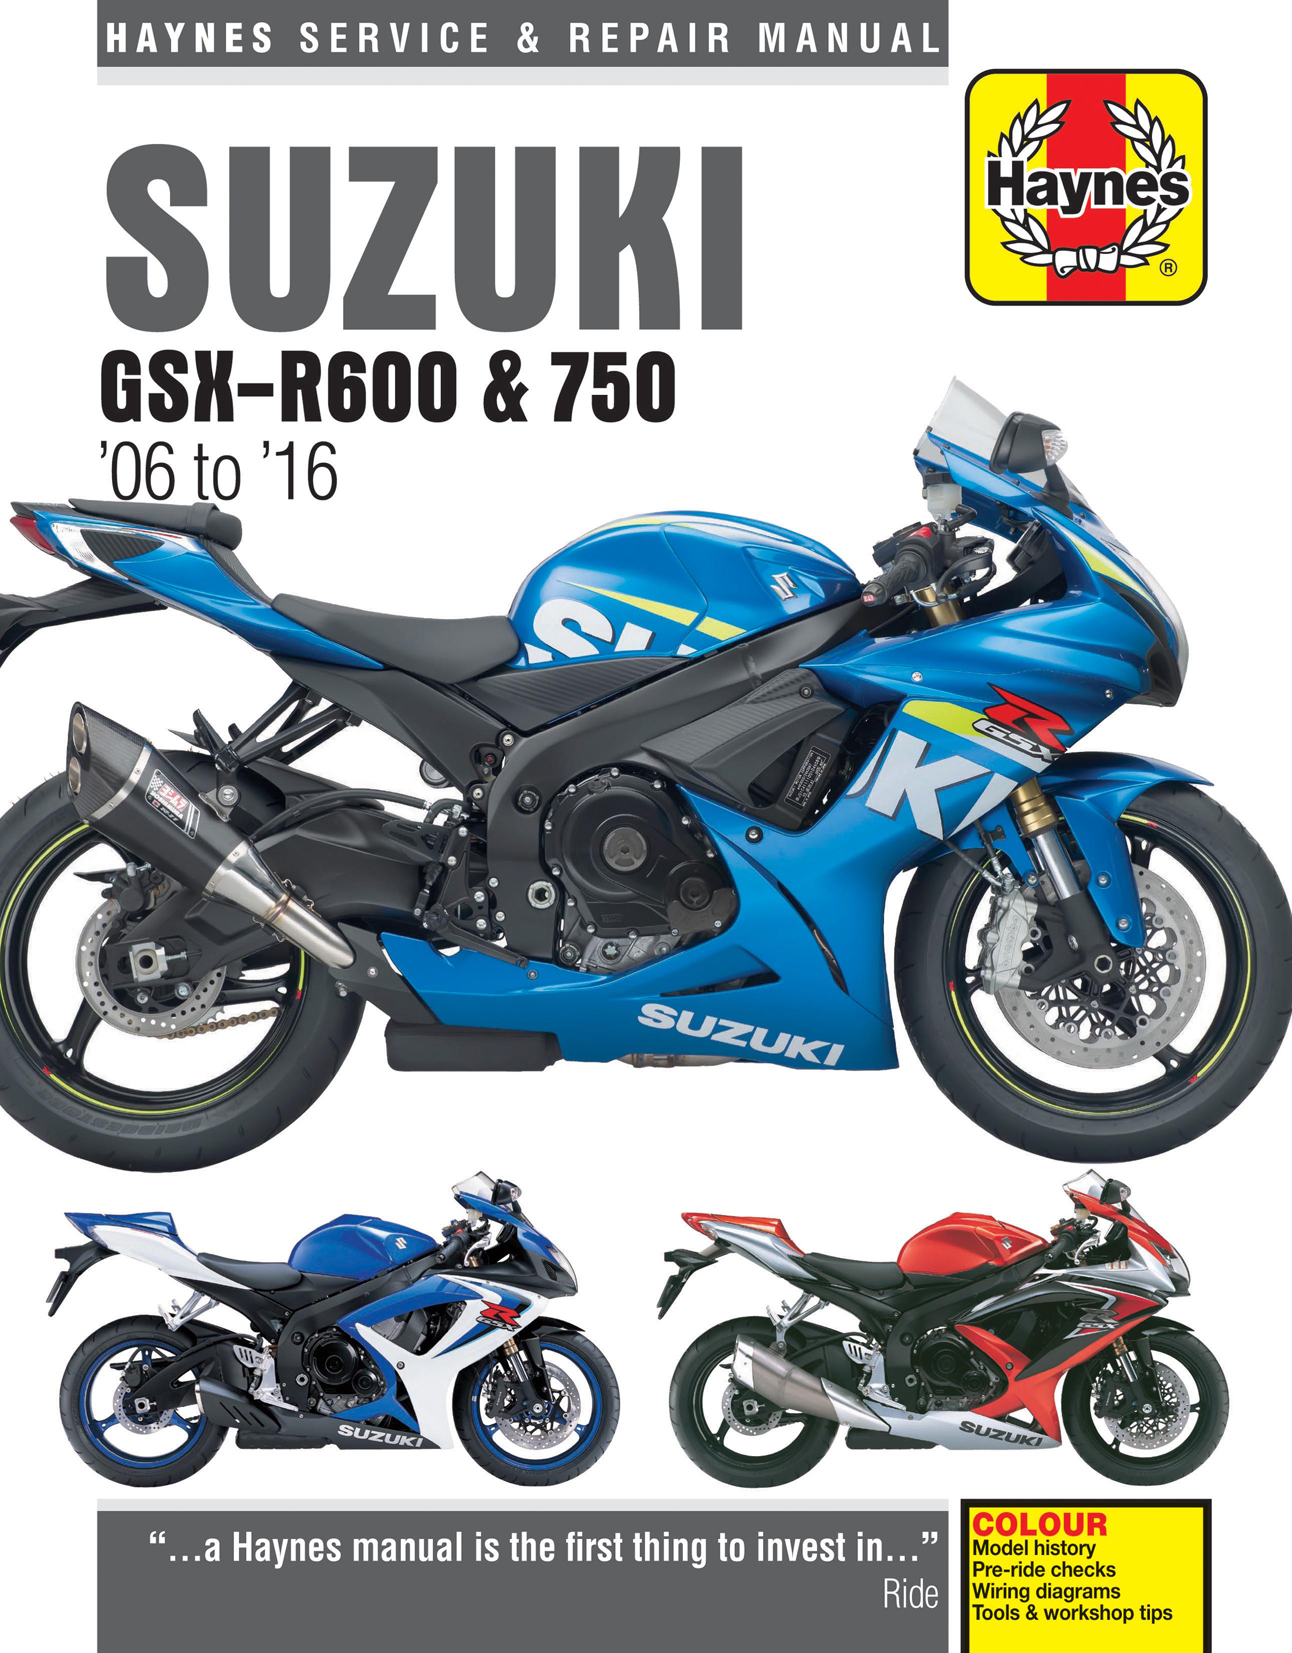 Enlarge Suzuki GSX-R600 ...